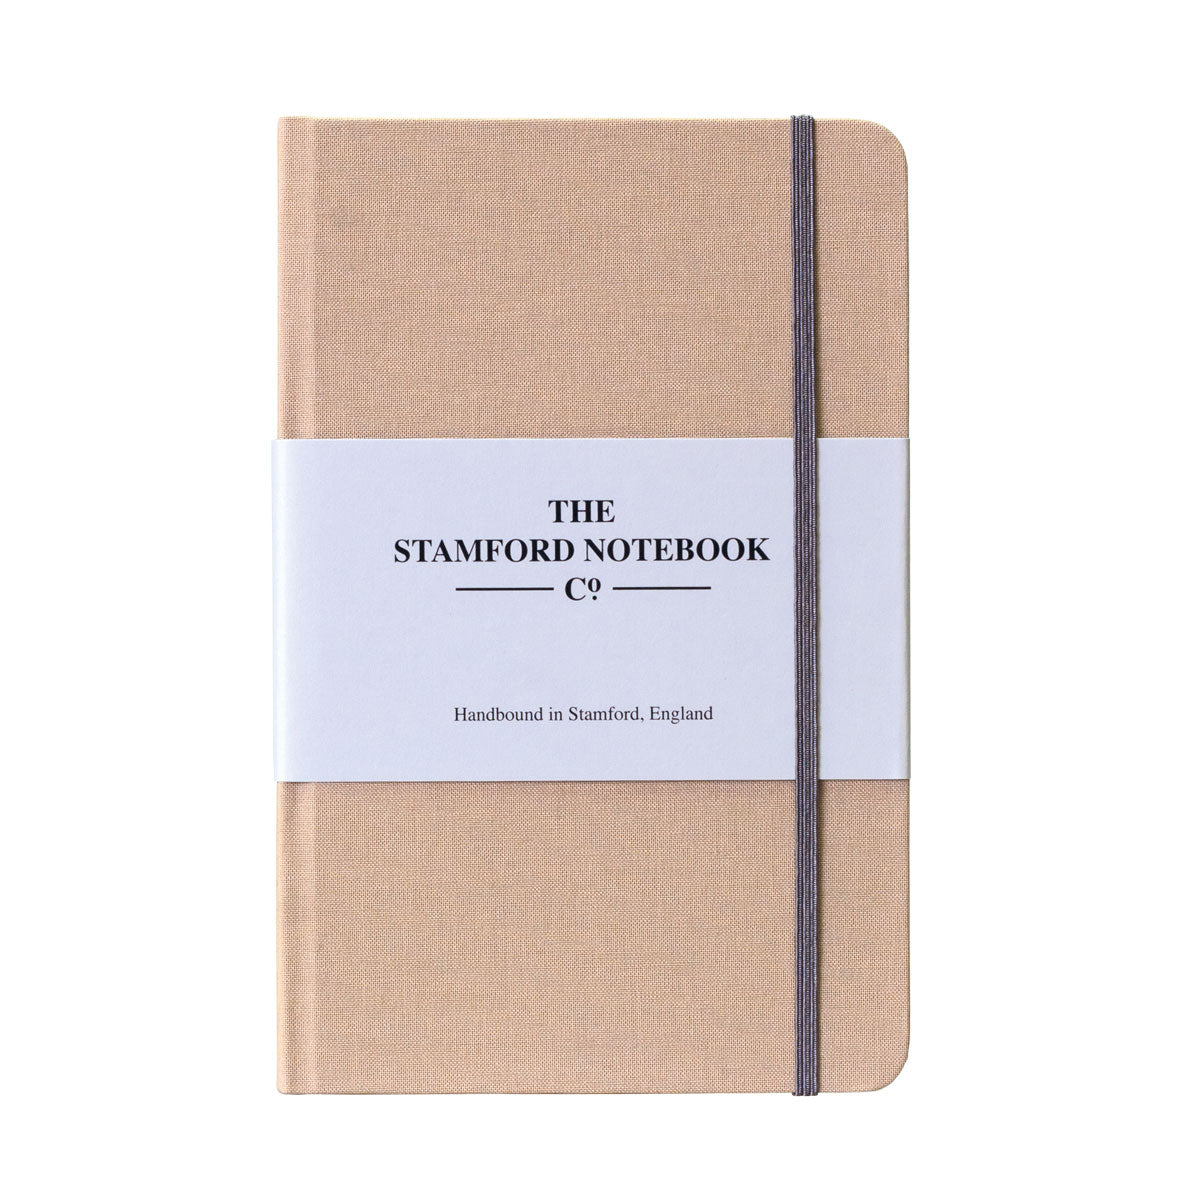 beige woven cloth handbound notebook